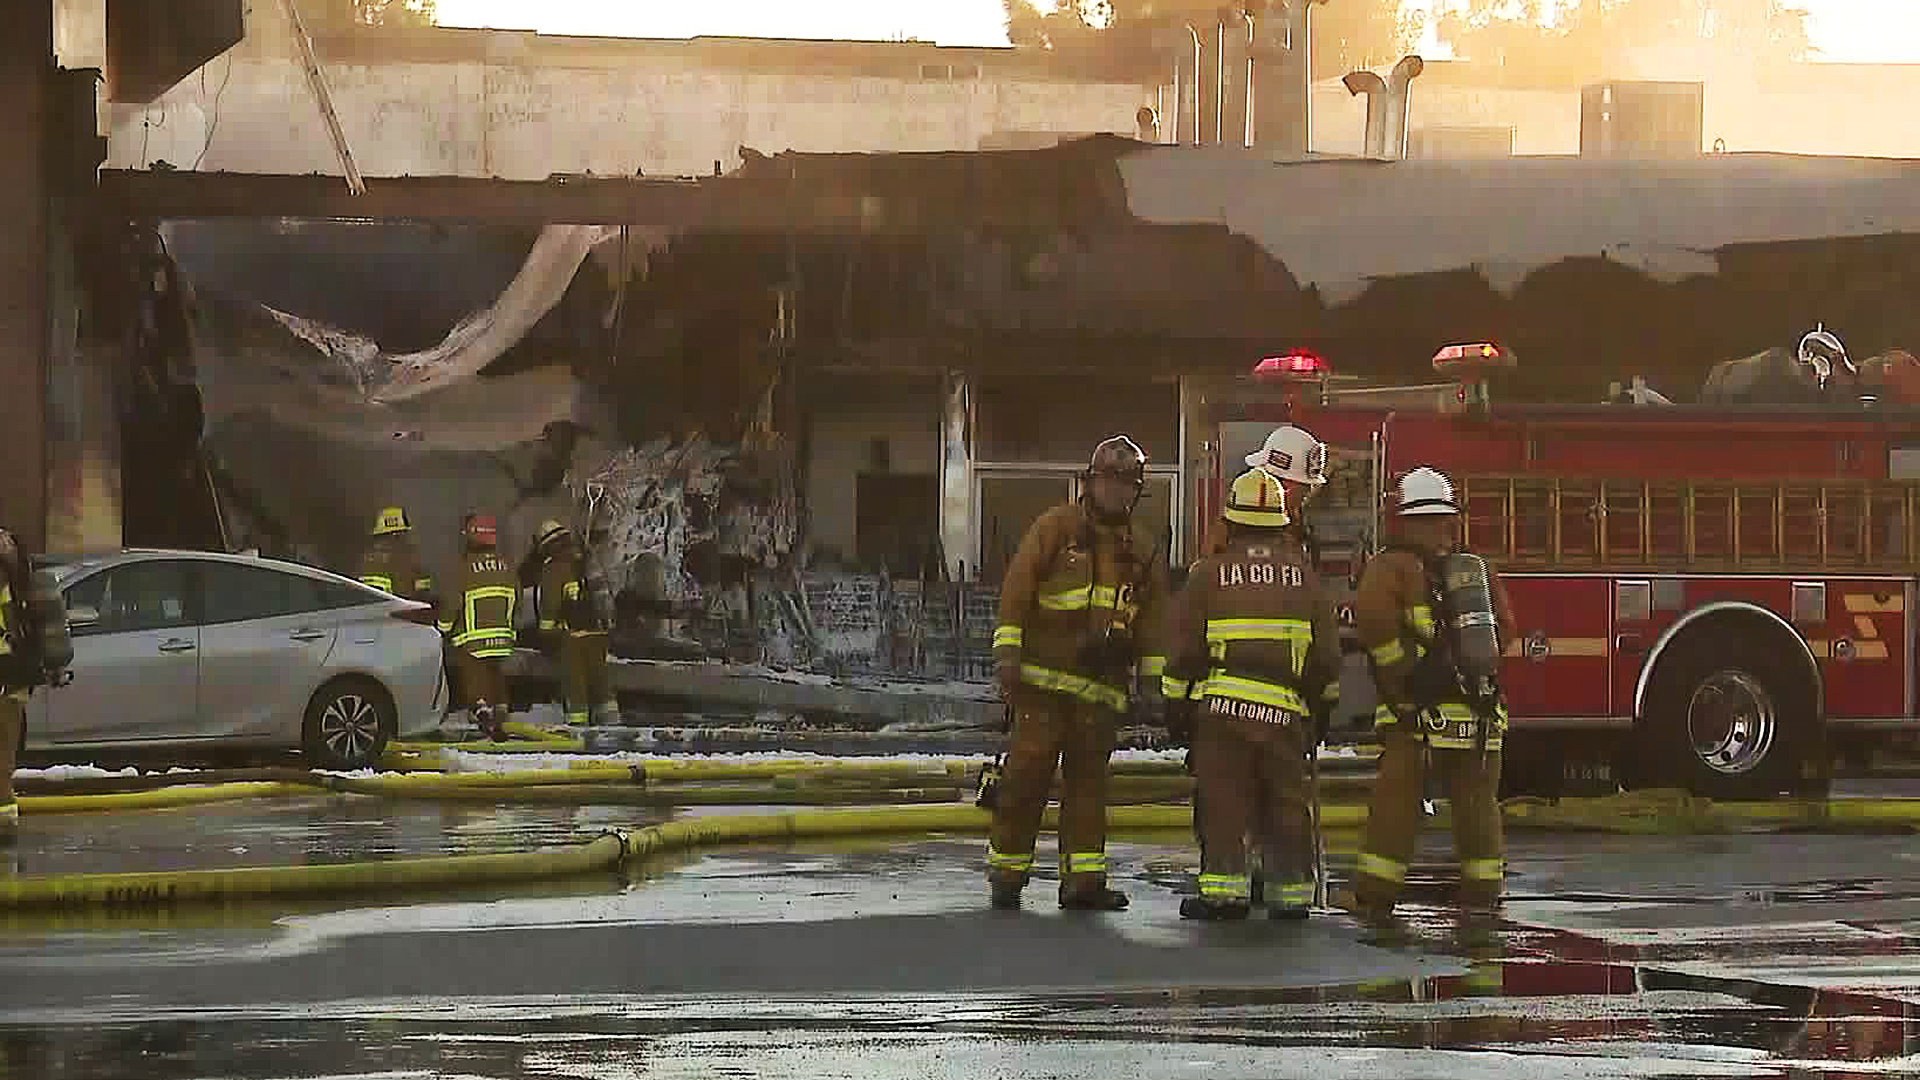 A fire badly damaged a dry-cleaning business in Rowland Heights on Dec. 20, 2019. (Credit: KTLA)